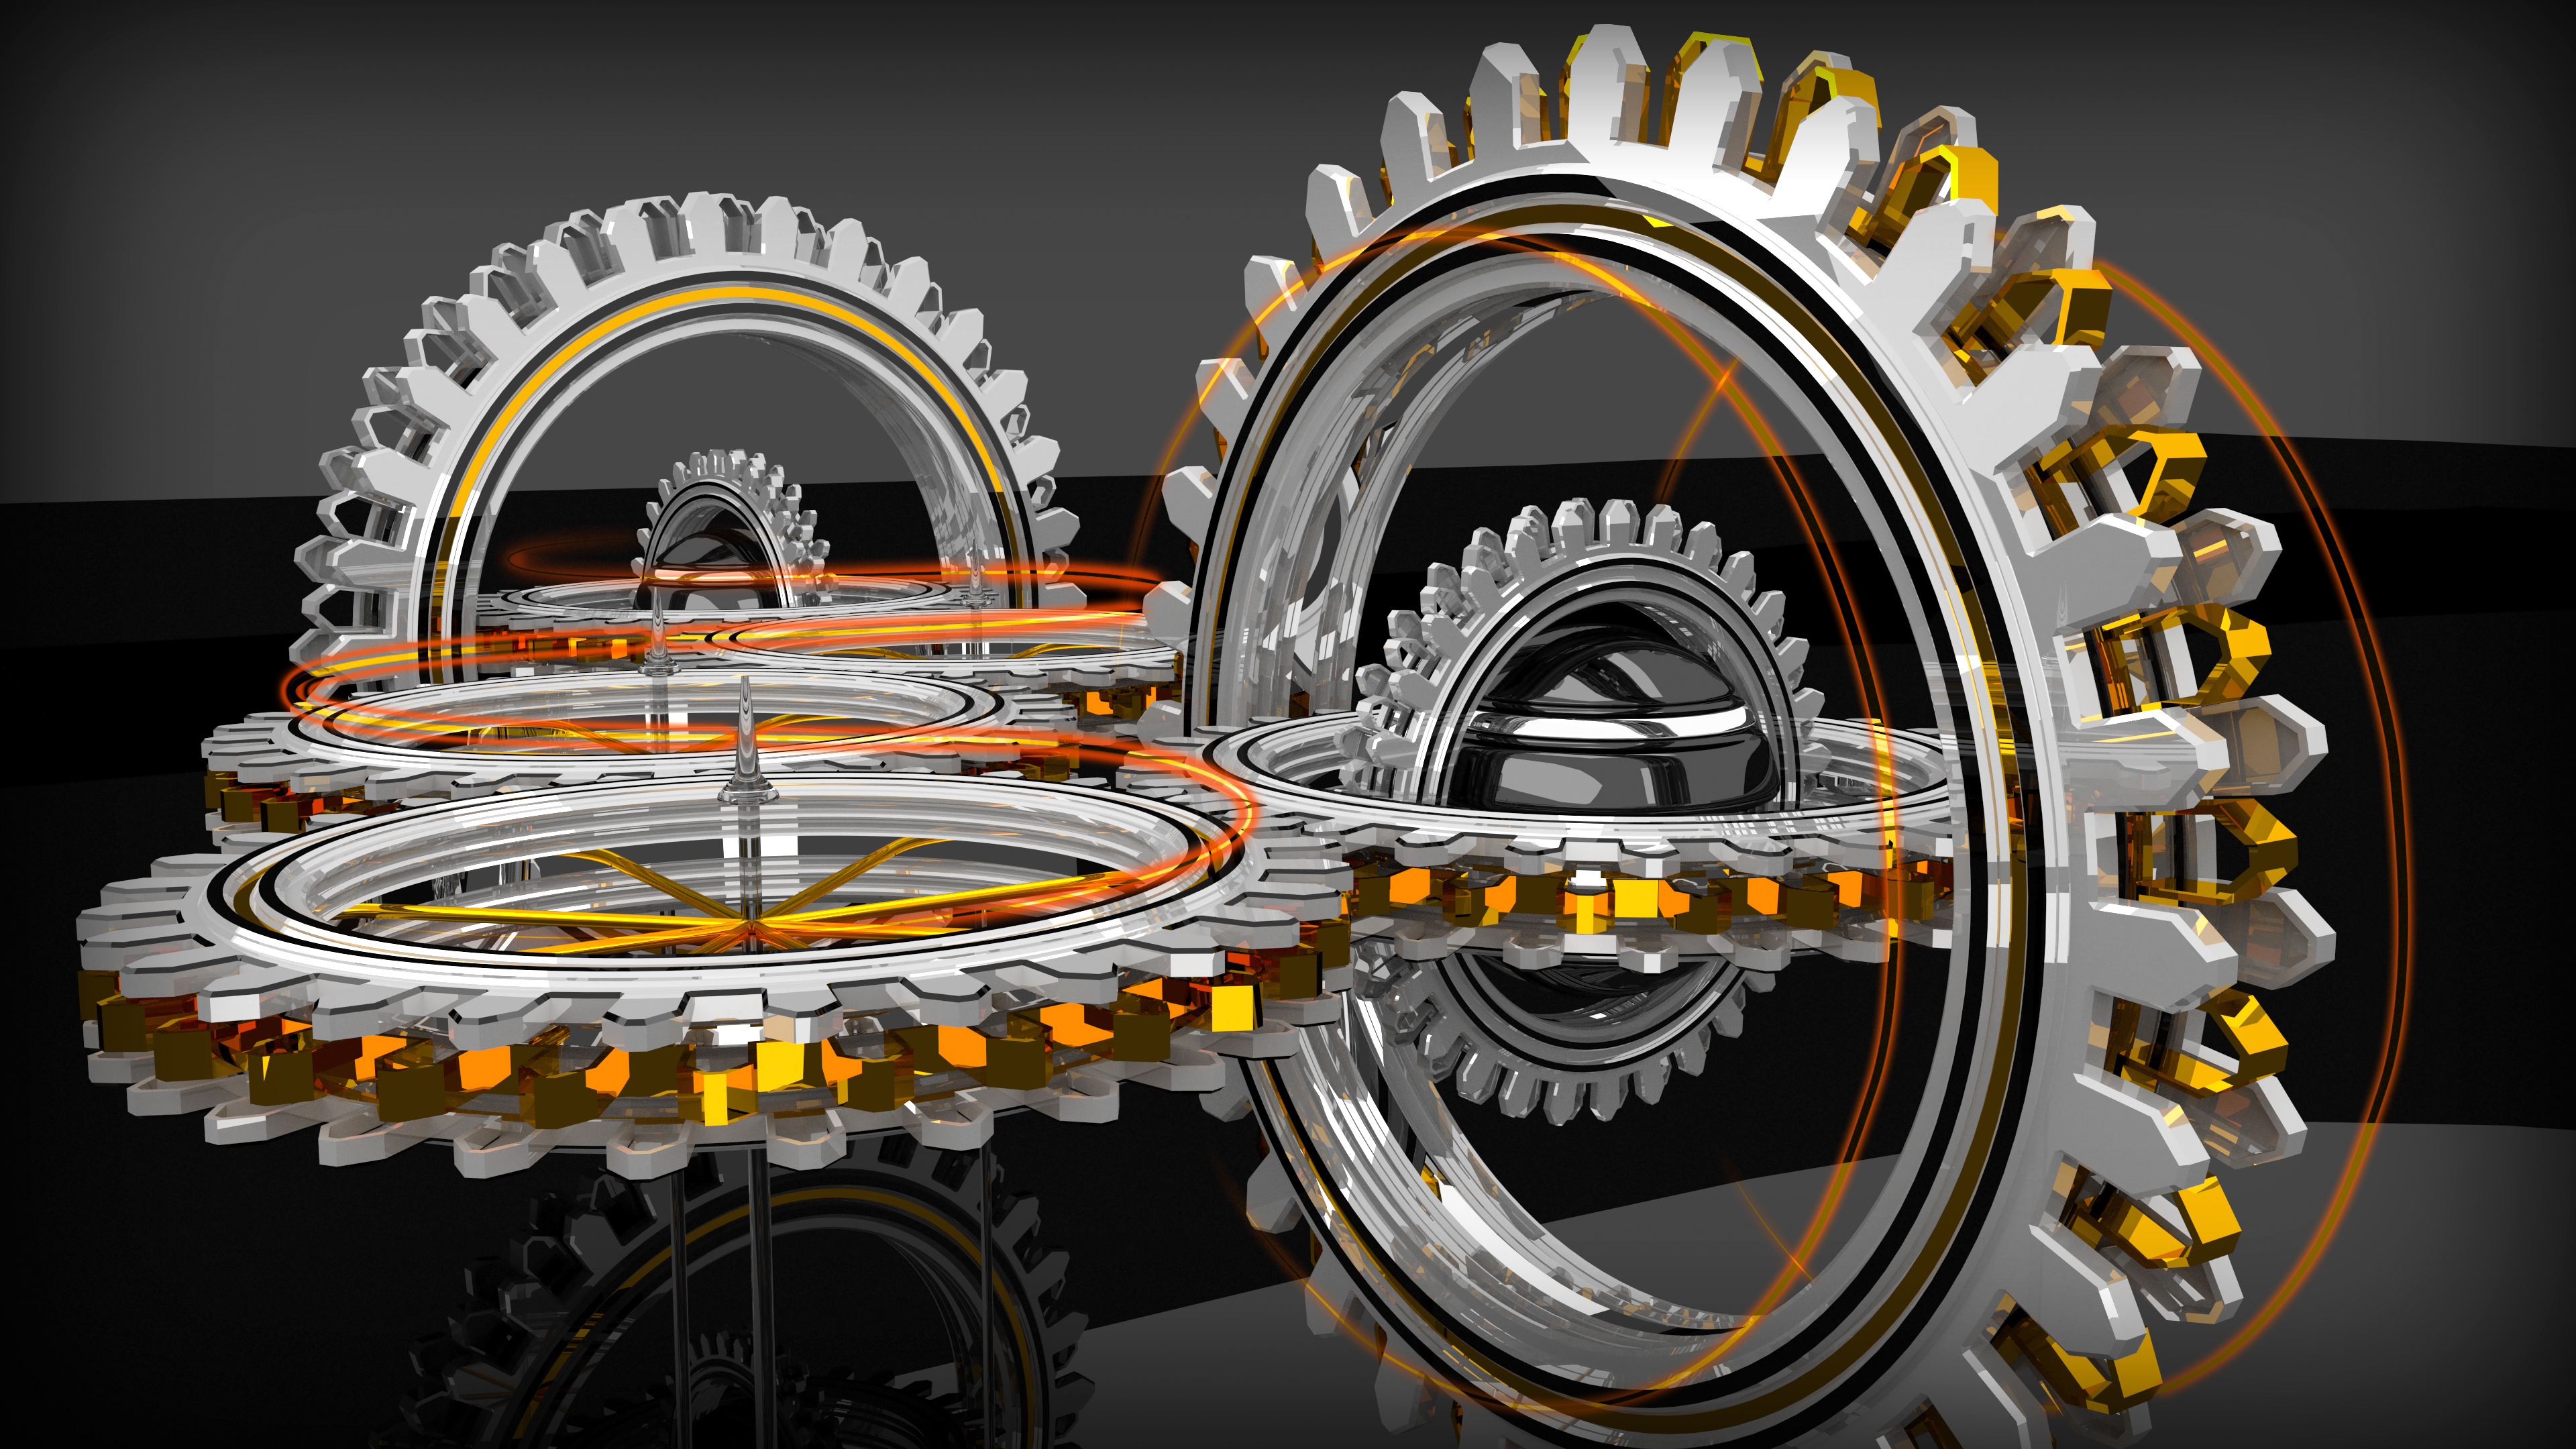 Concentric Gears (4k and Full HD) by Dario999